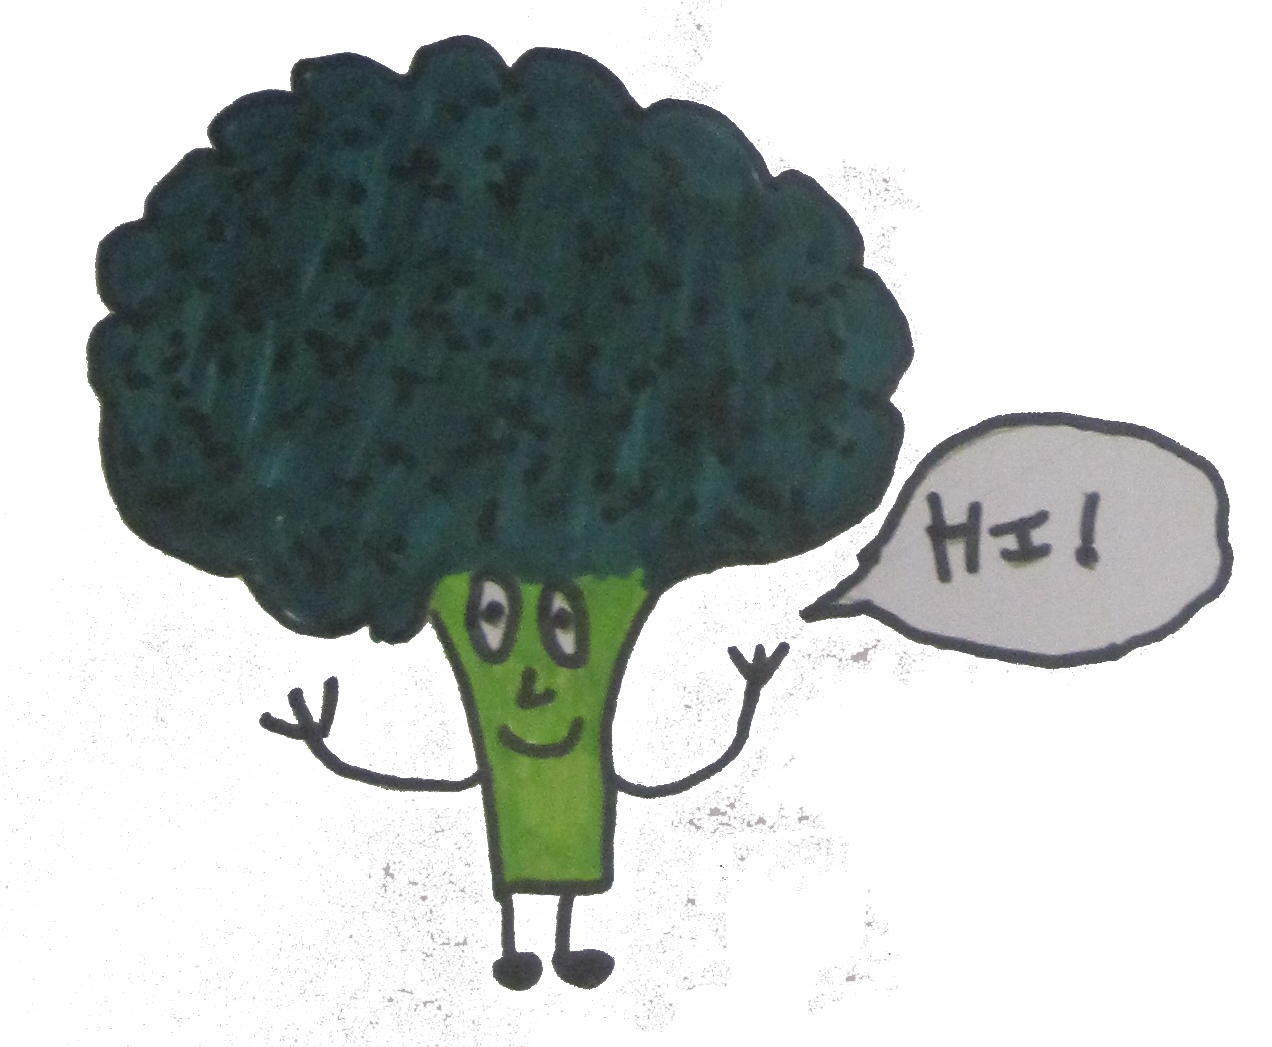 Broccoli figure